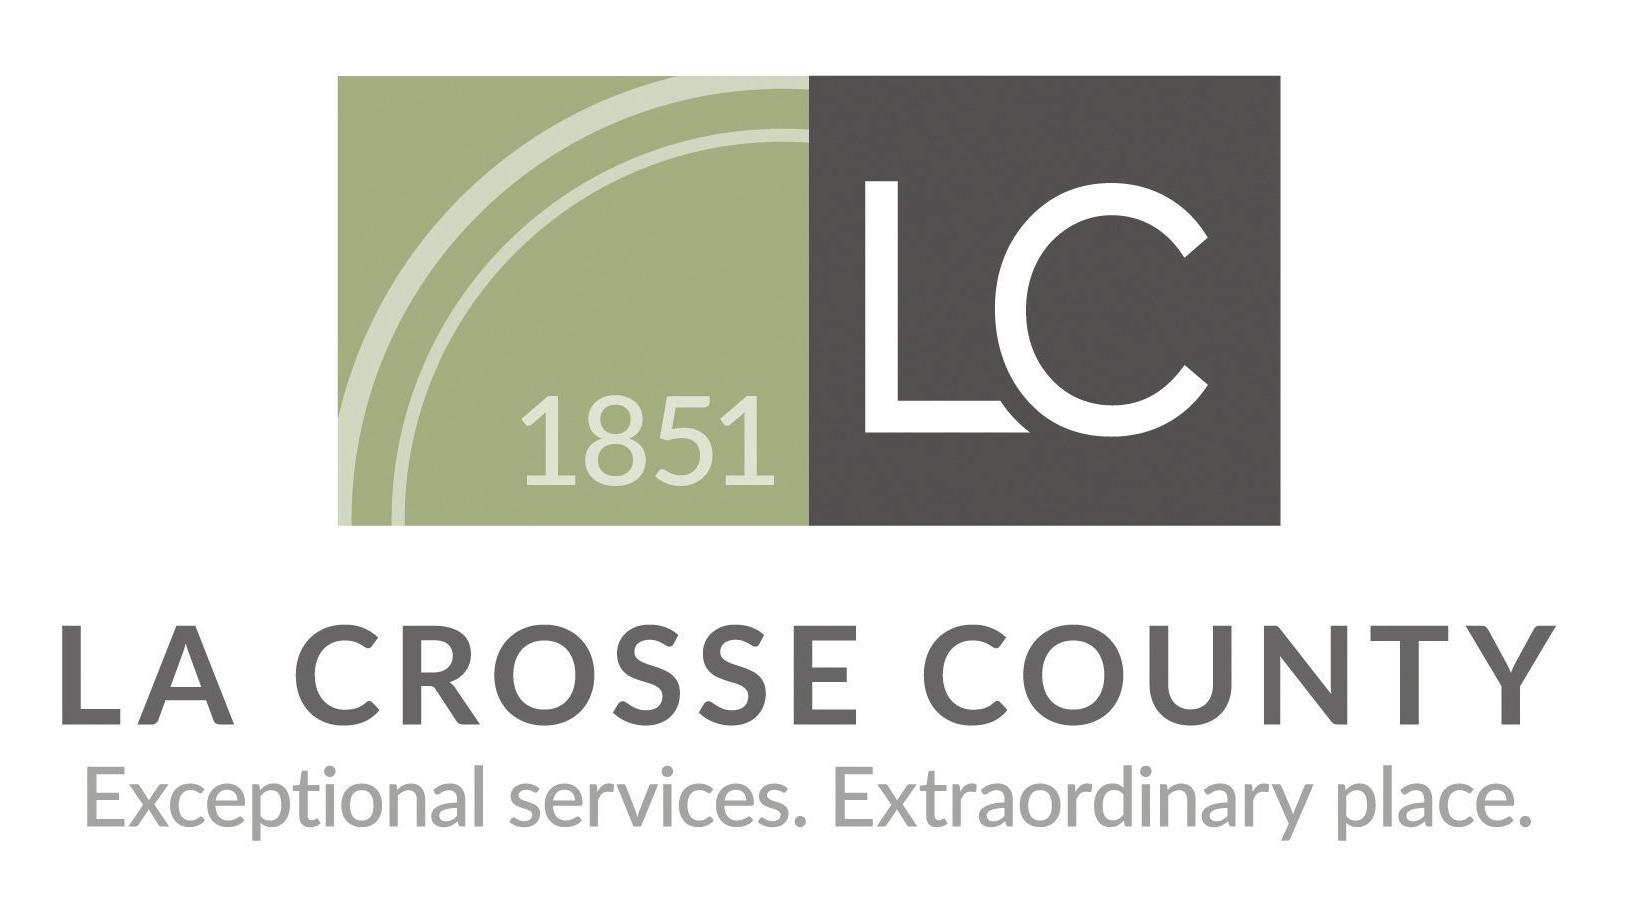 La Crosse News >> Logo, tagline unveiled for La Crosse County's marketing effort | Local | lacrossetribune.com